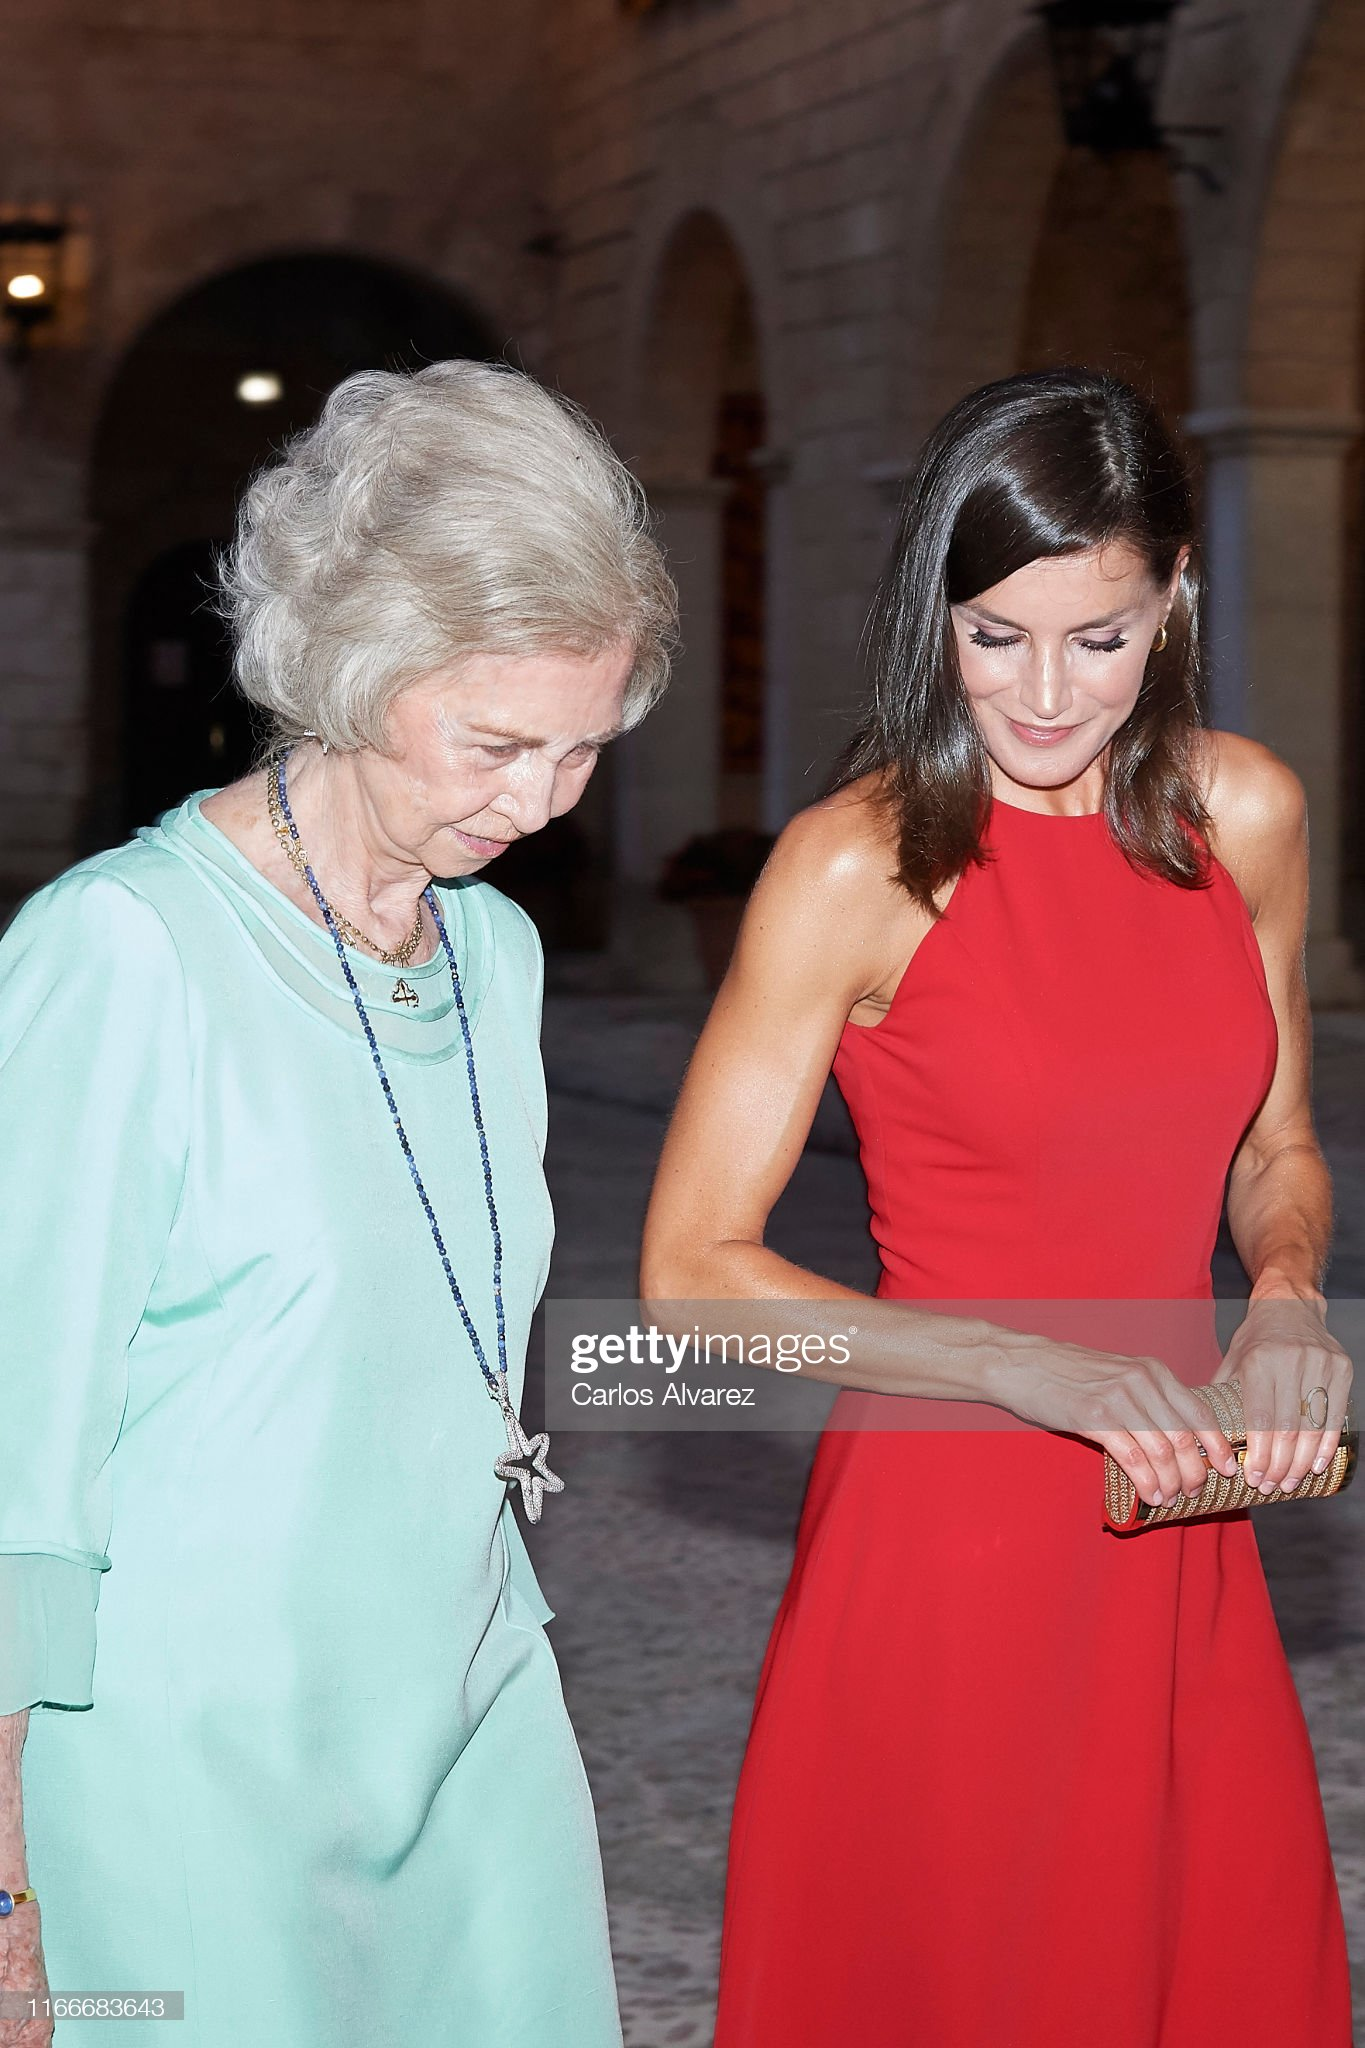 https://media.gettyimages.com/photos/queen-letizia-of-spain-and-queen-sofia-host-a-dinner-for-authorities-picture-id1166683643?s=2048x2048